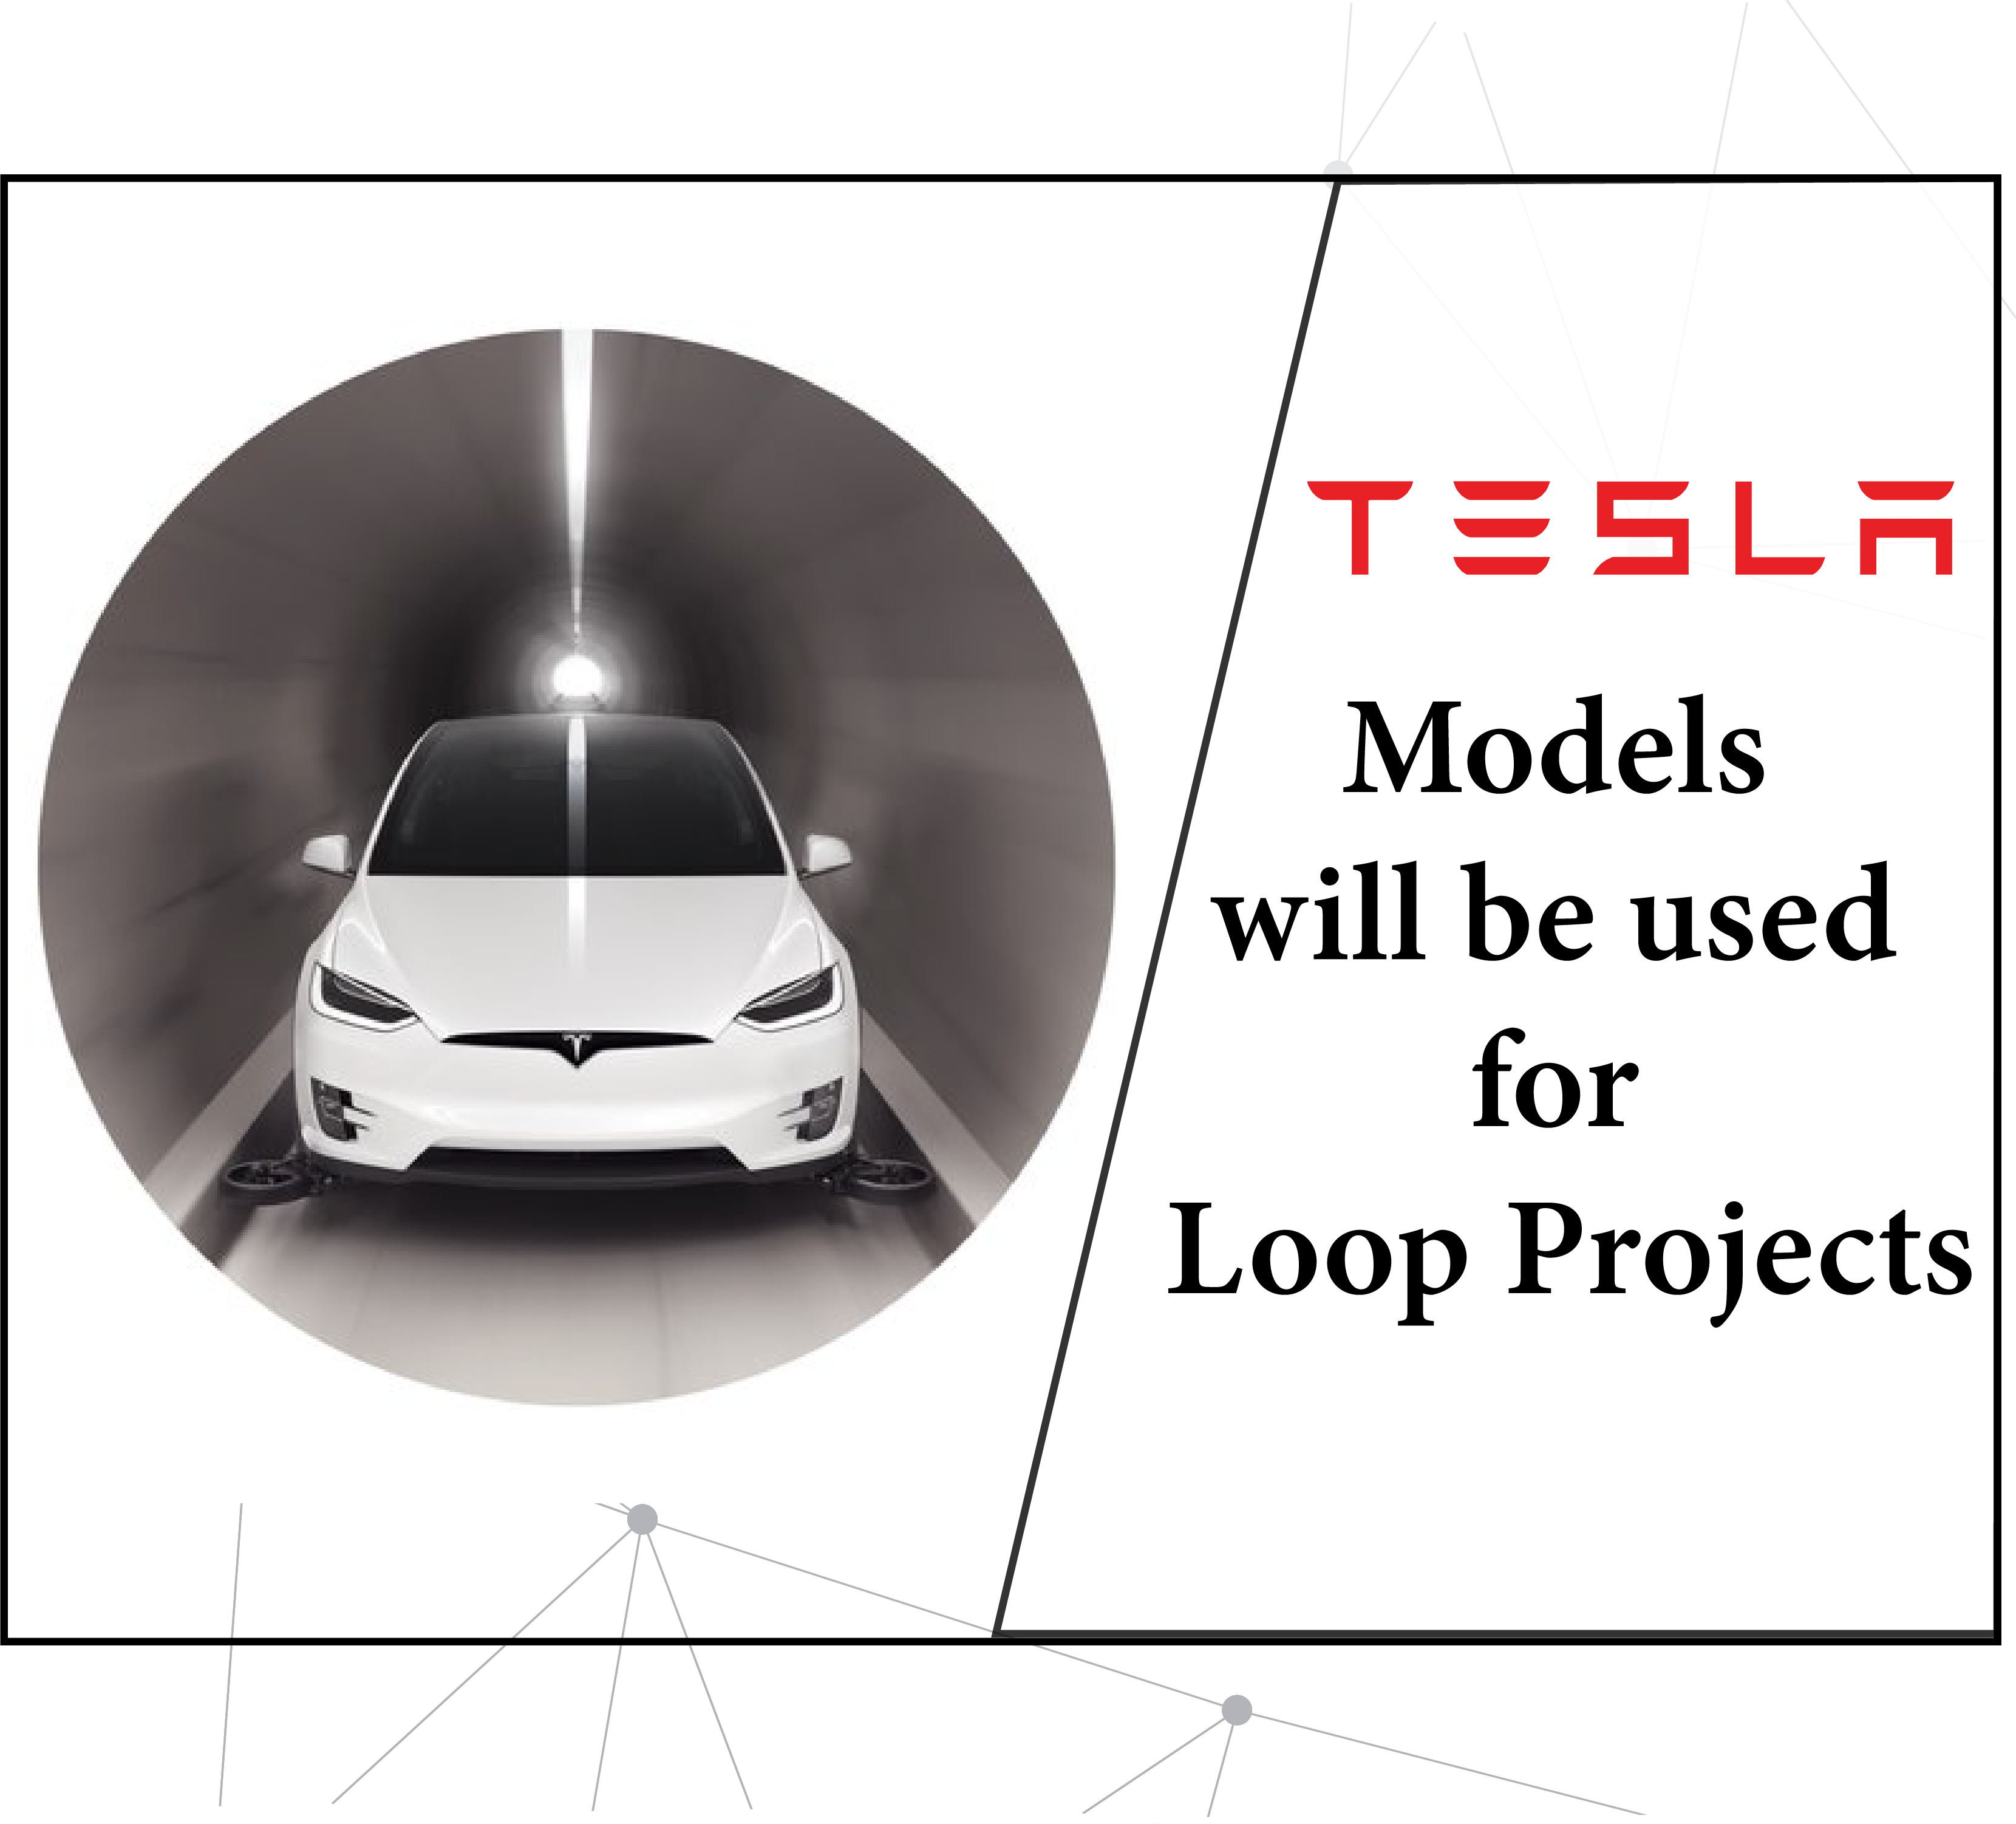 Tesla Models will be used for the Loop Projects